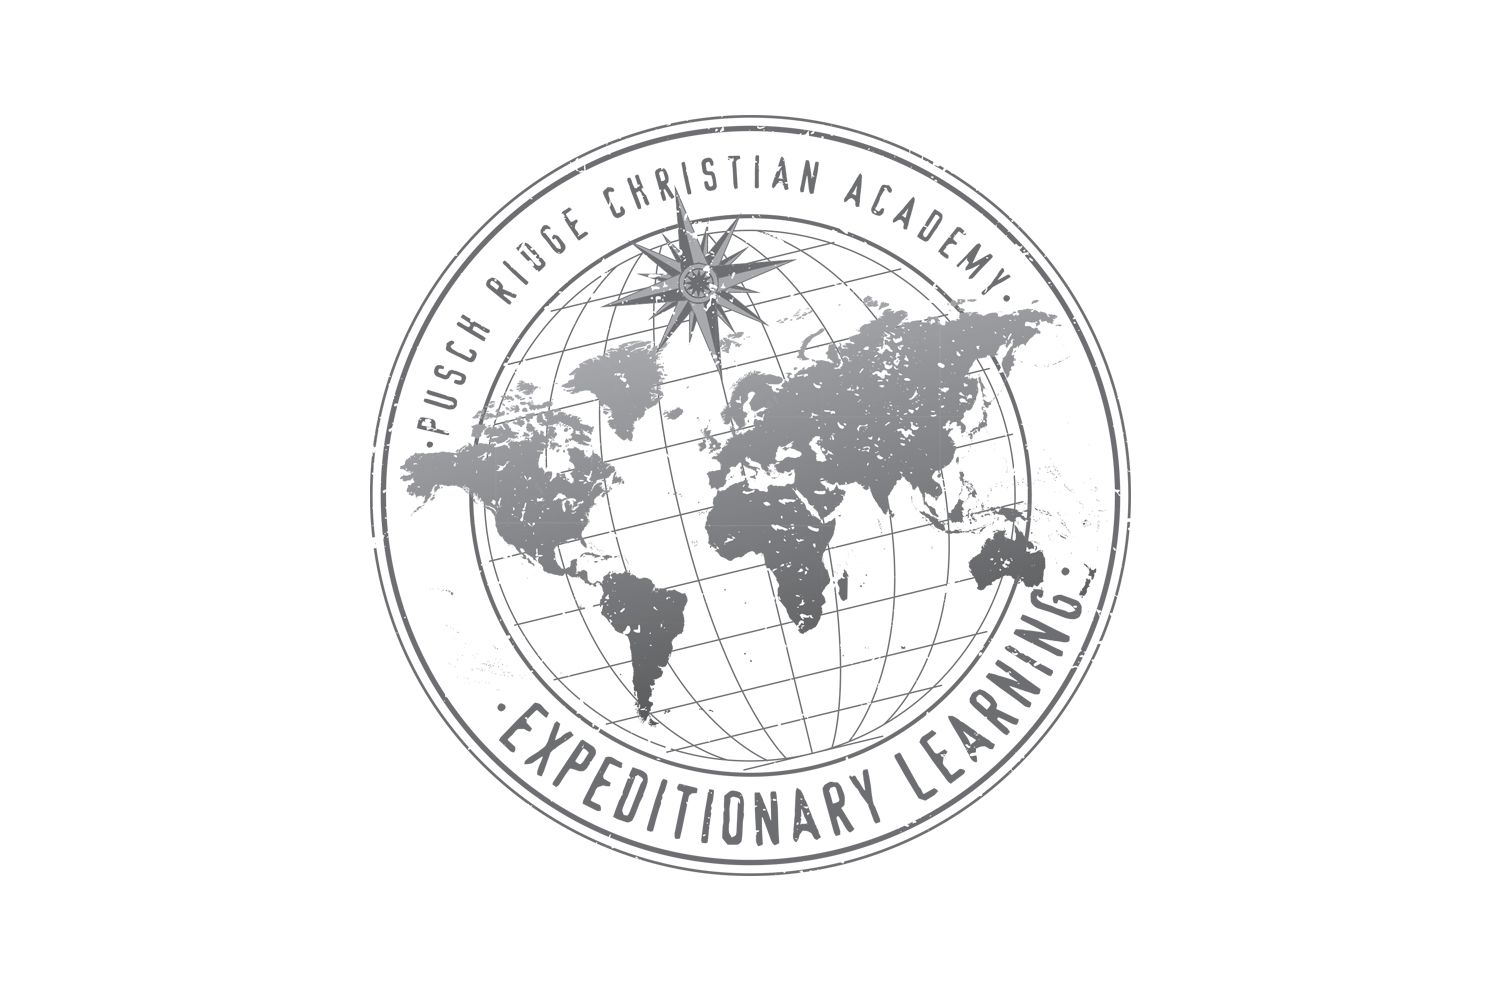 Expeditionary-logo.jpg